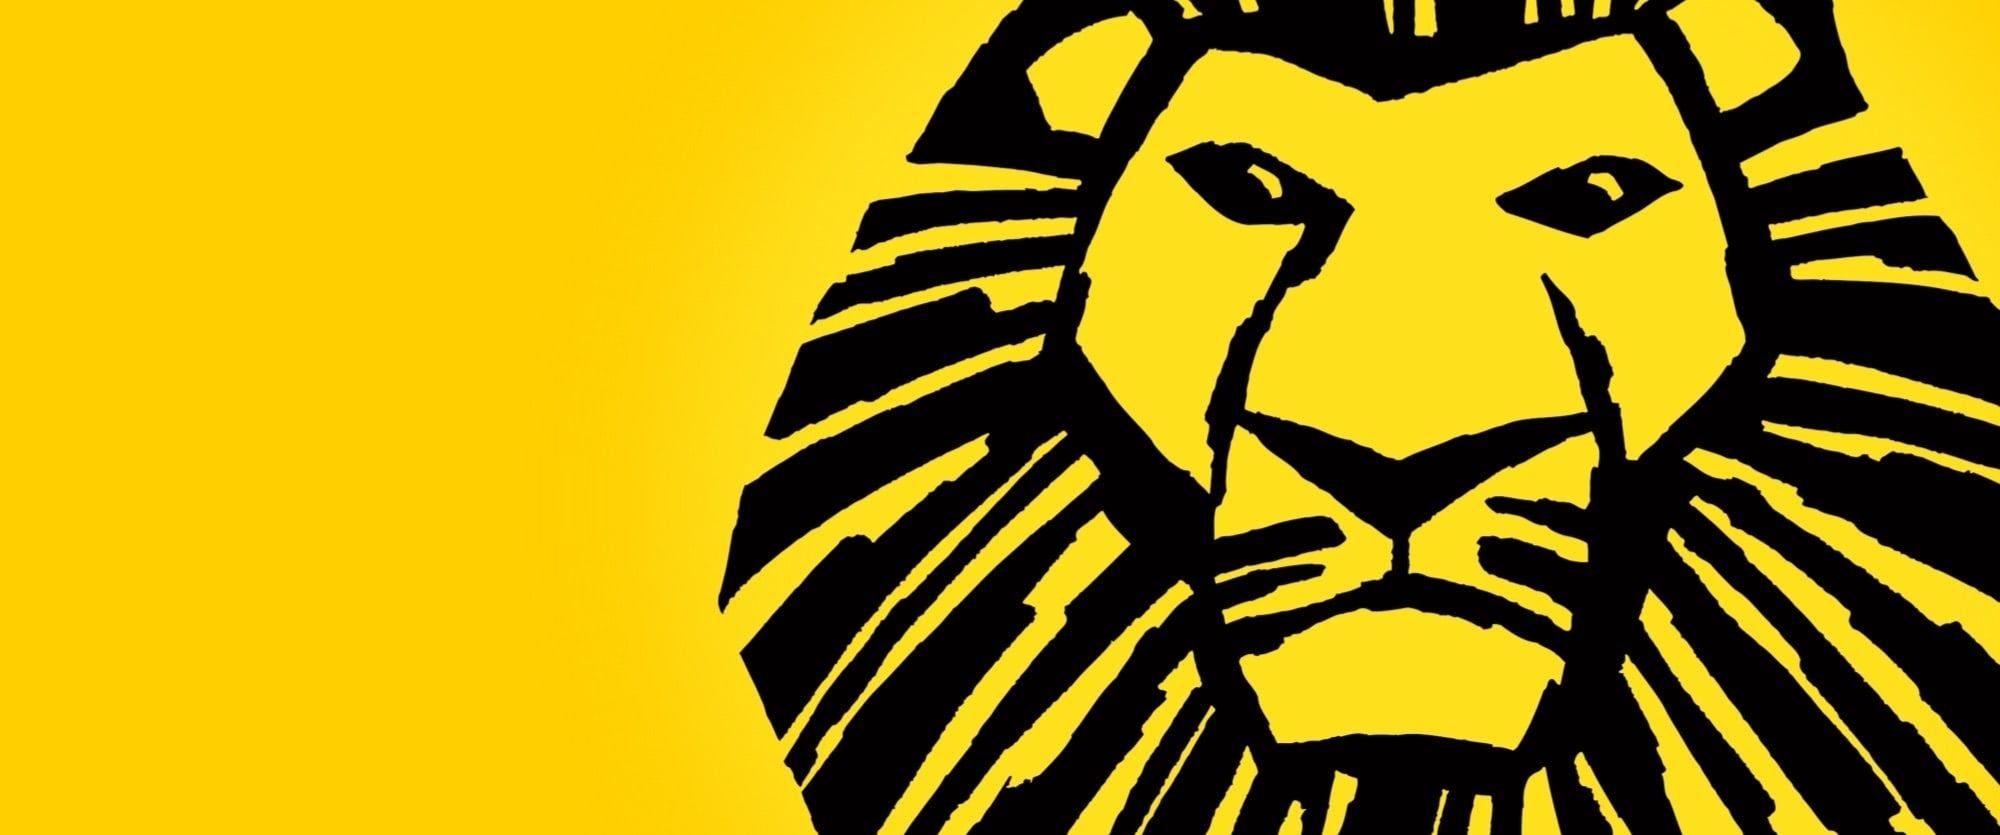 Book Tickets to The Lion King Tour